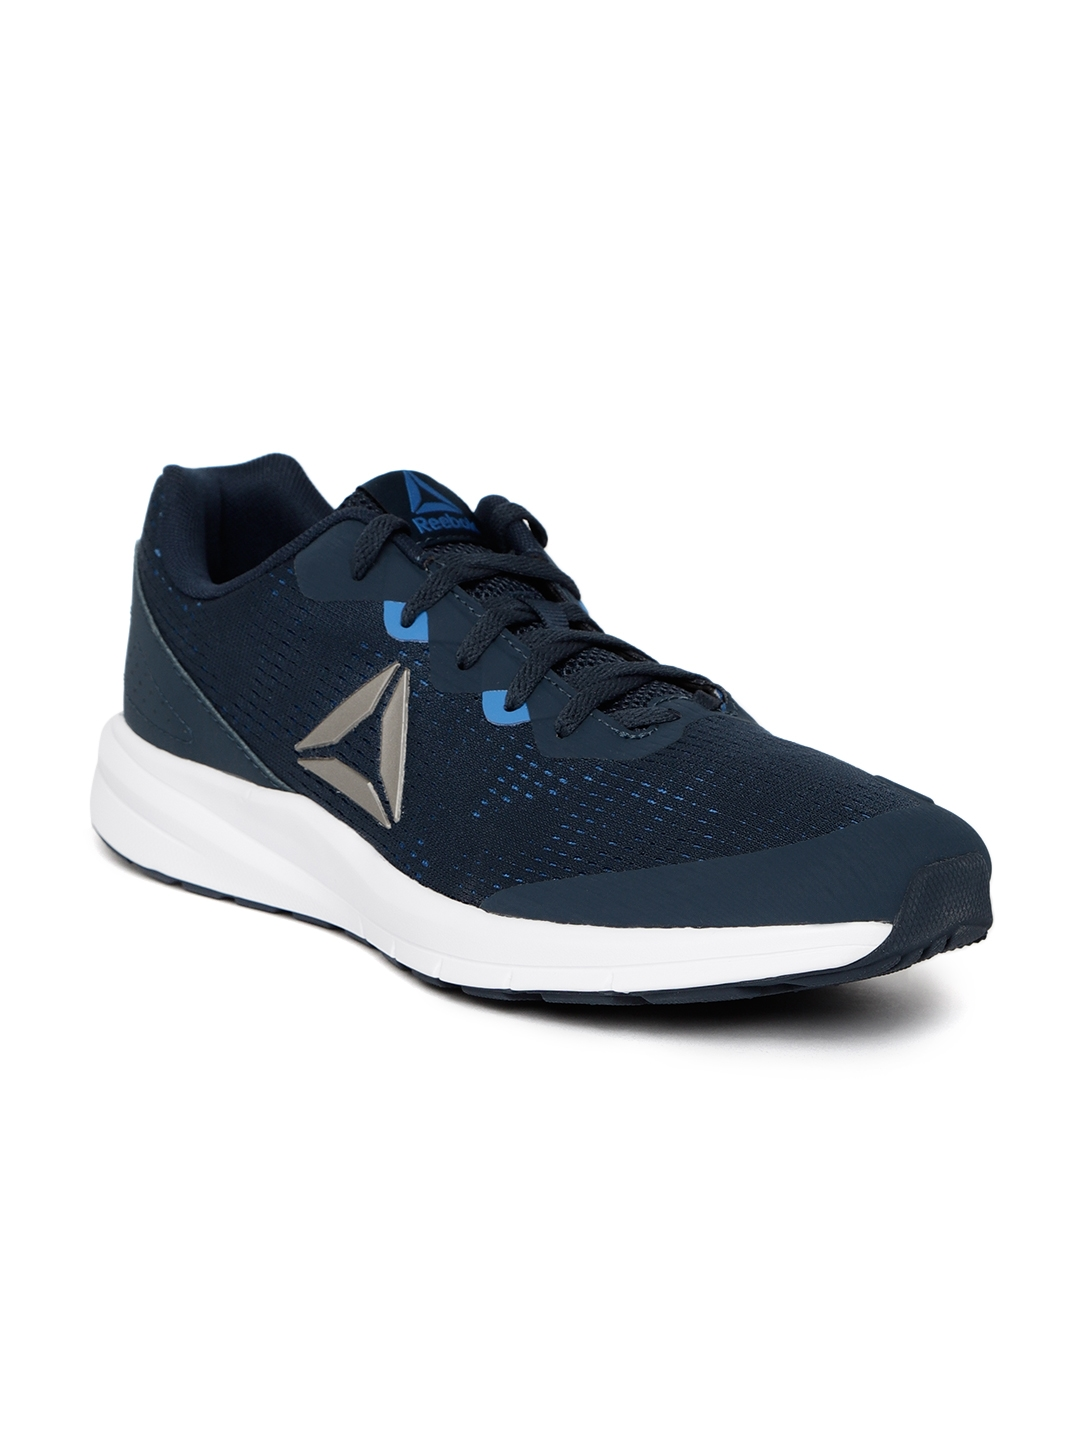 Buy Reebok Men Navy Blue 3.0 Running Shoes - Sports Shoes for Men ... 619cb299a